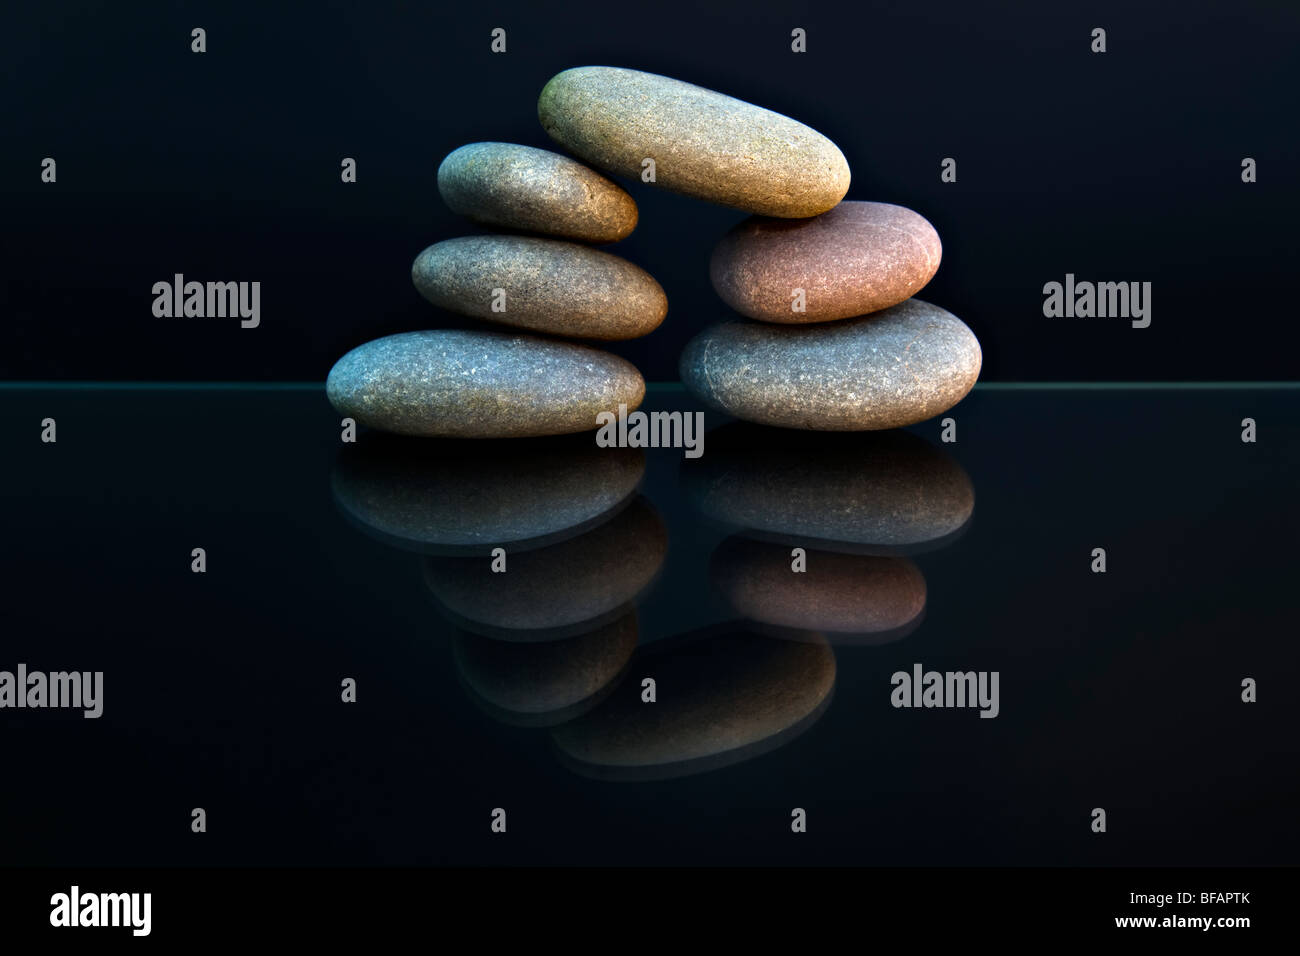 Still life shot of beach pebbles balanced in a stone pile against black background with reflection making a circular - Stock Image